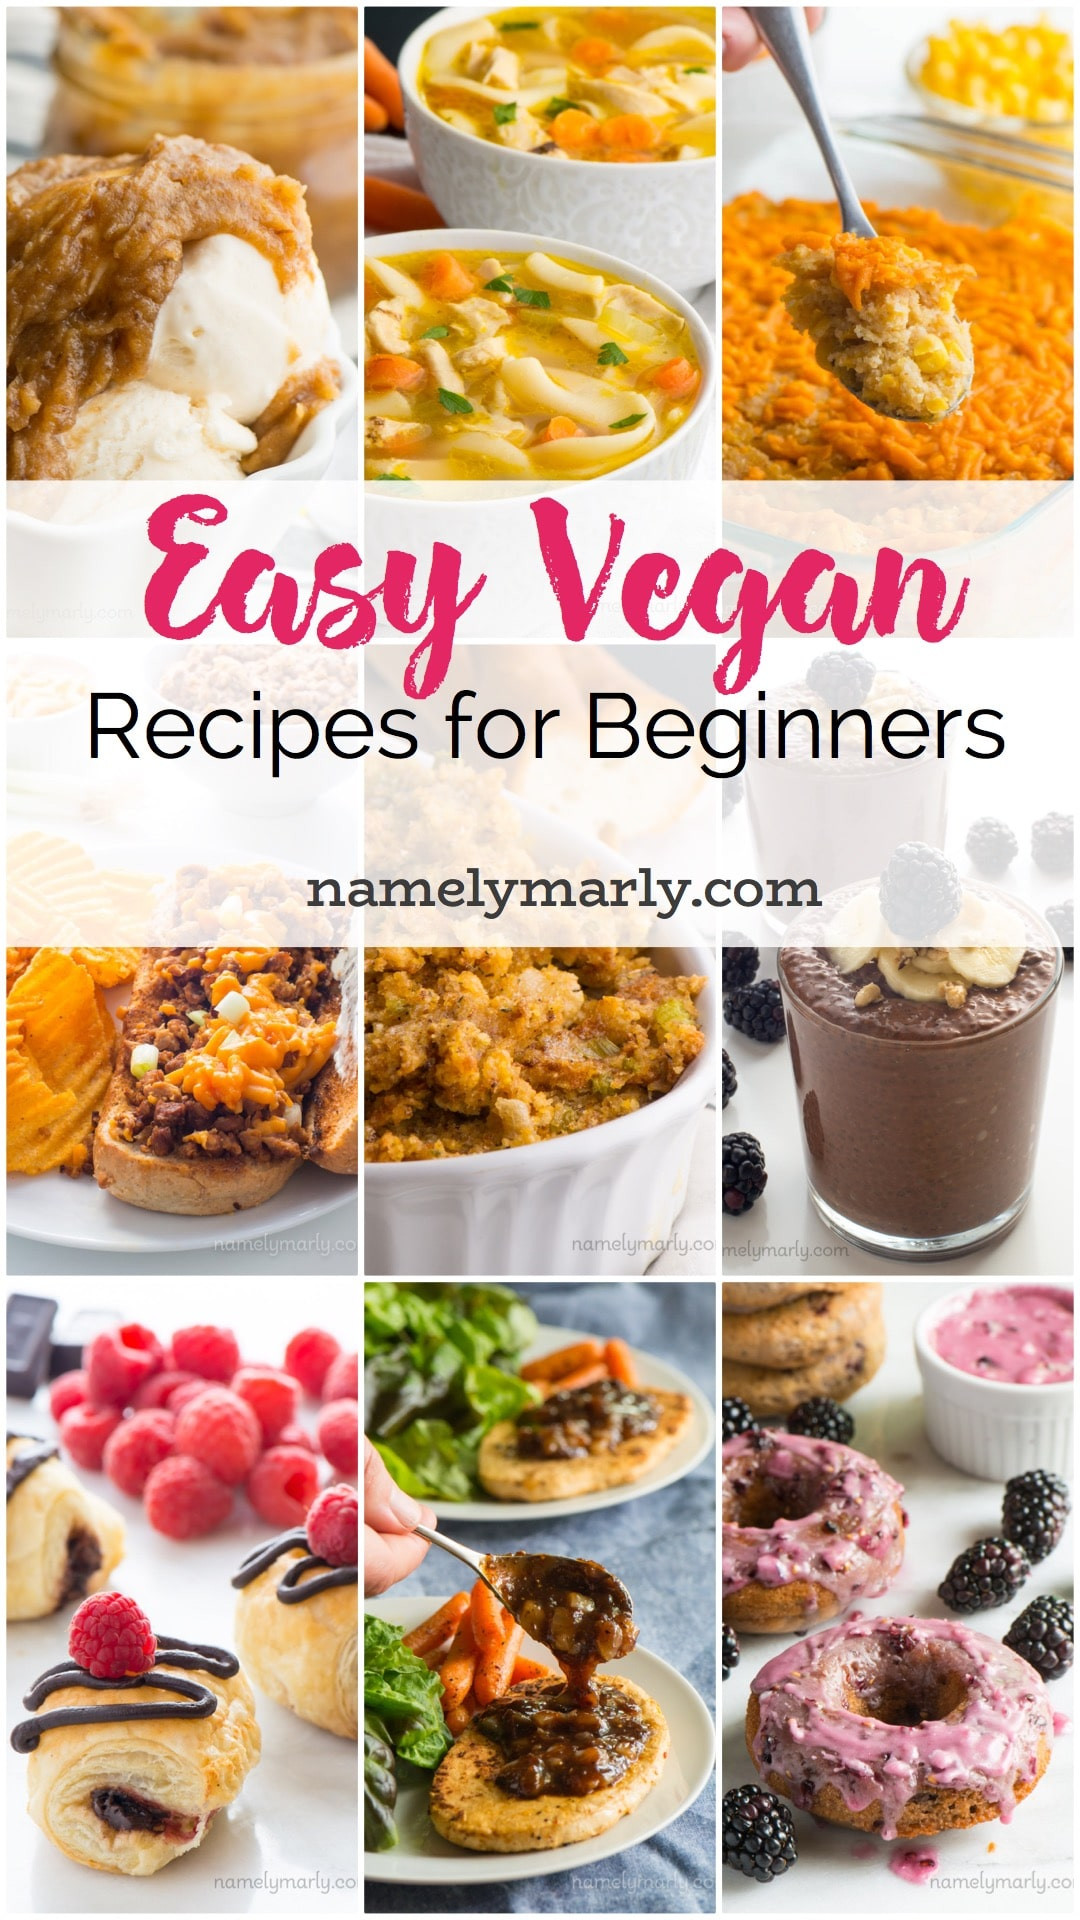 Easy Vegan Recipes  Simple Vegan Recipes for Beginners Namely Marly